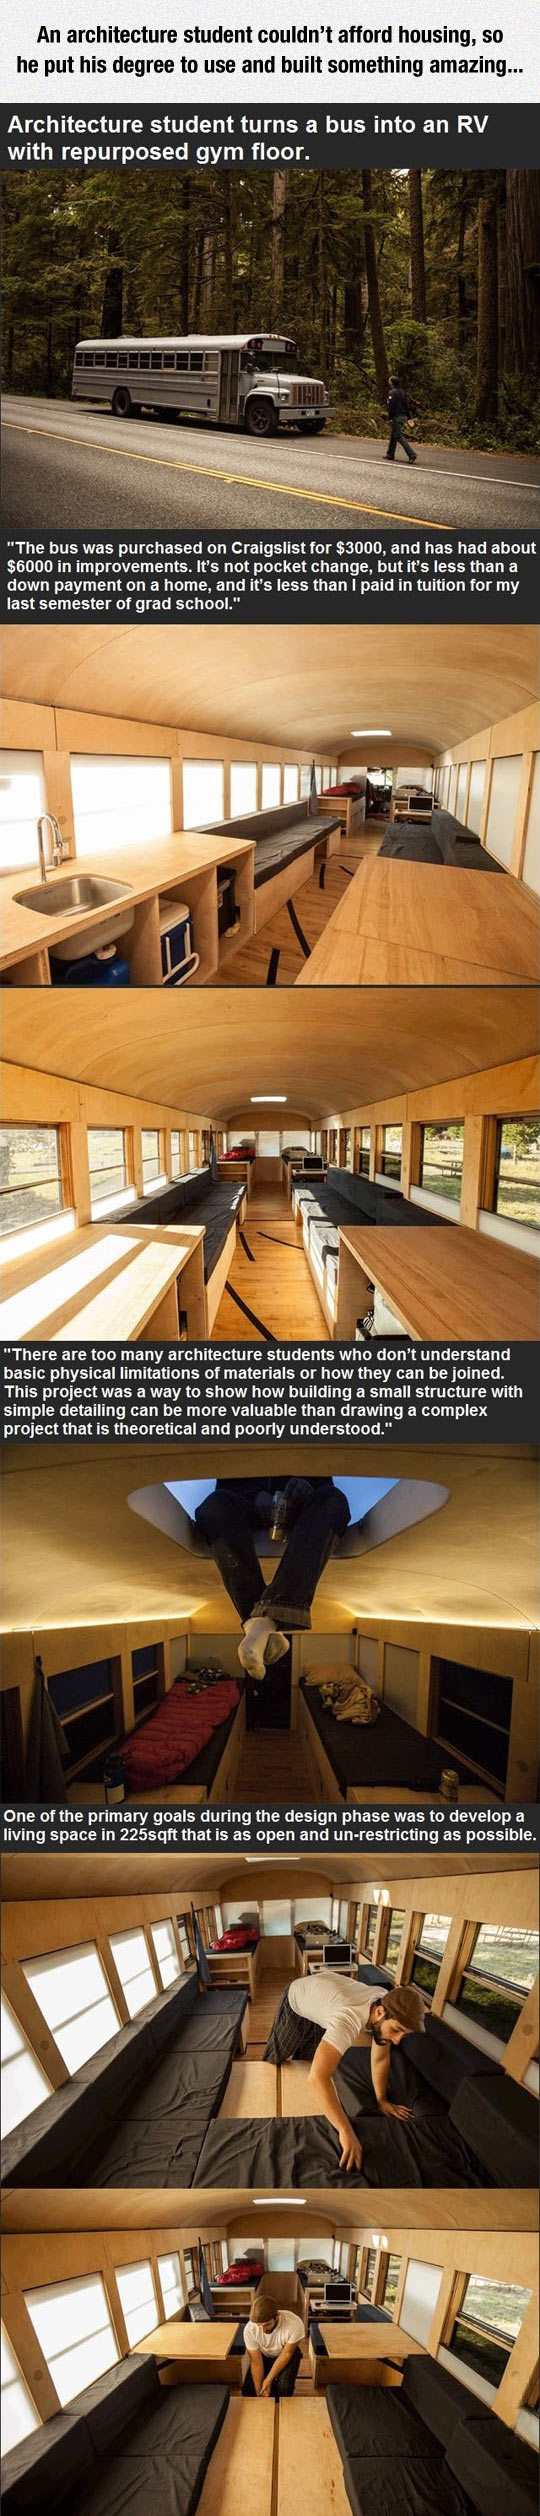 funny-bus-cabin-bed-wood-house